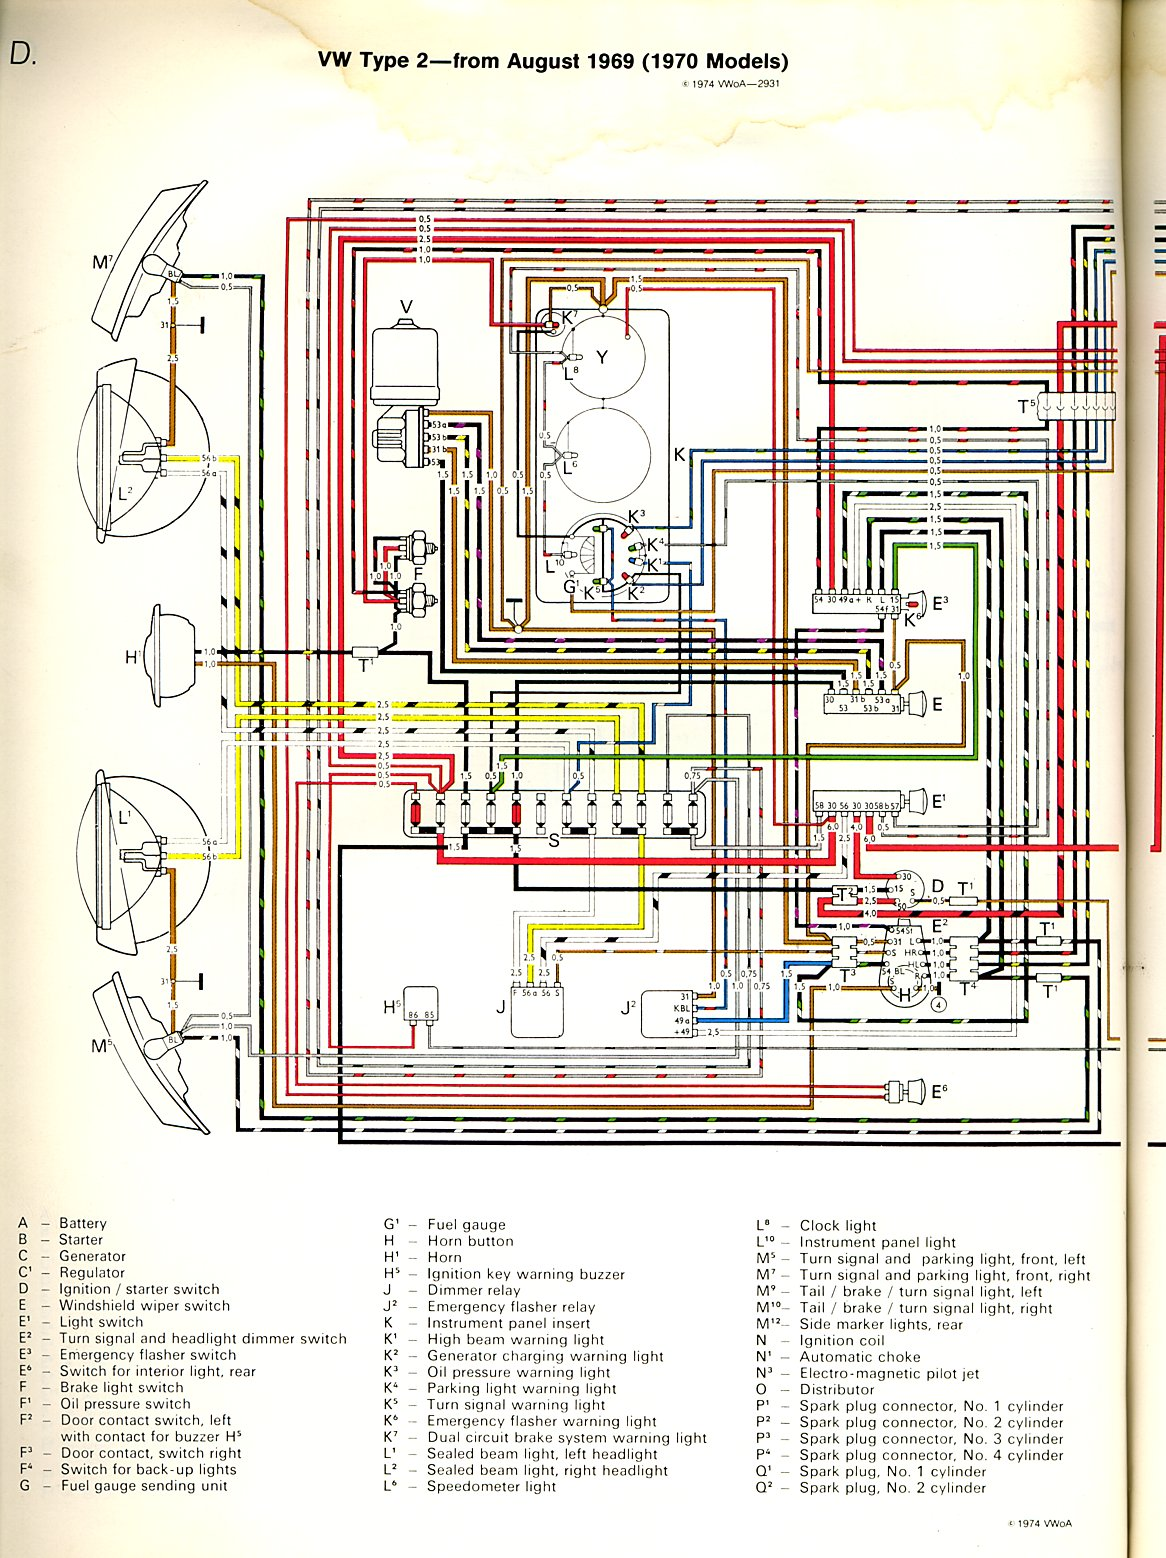 Vw Bus Wiring Diagram: TheSamba.com :: Type 2 Wiring Diagrams,Design